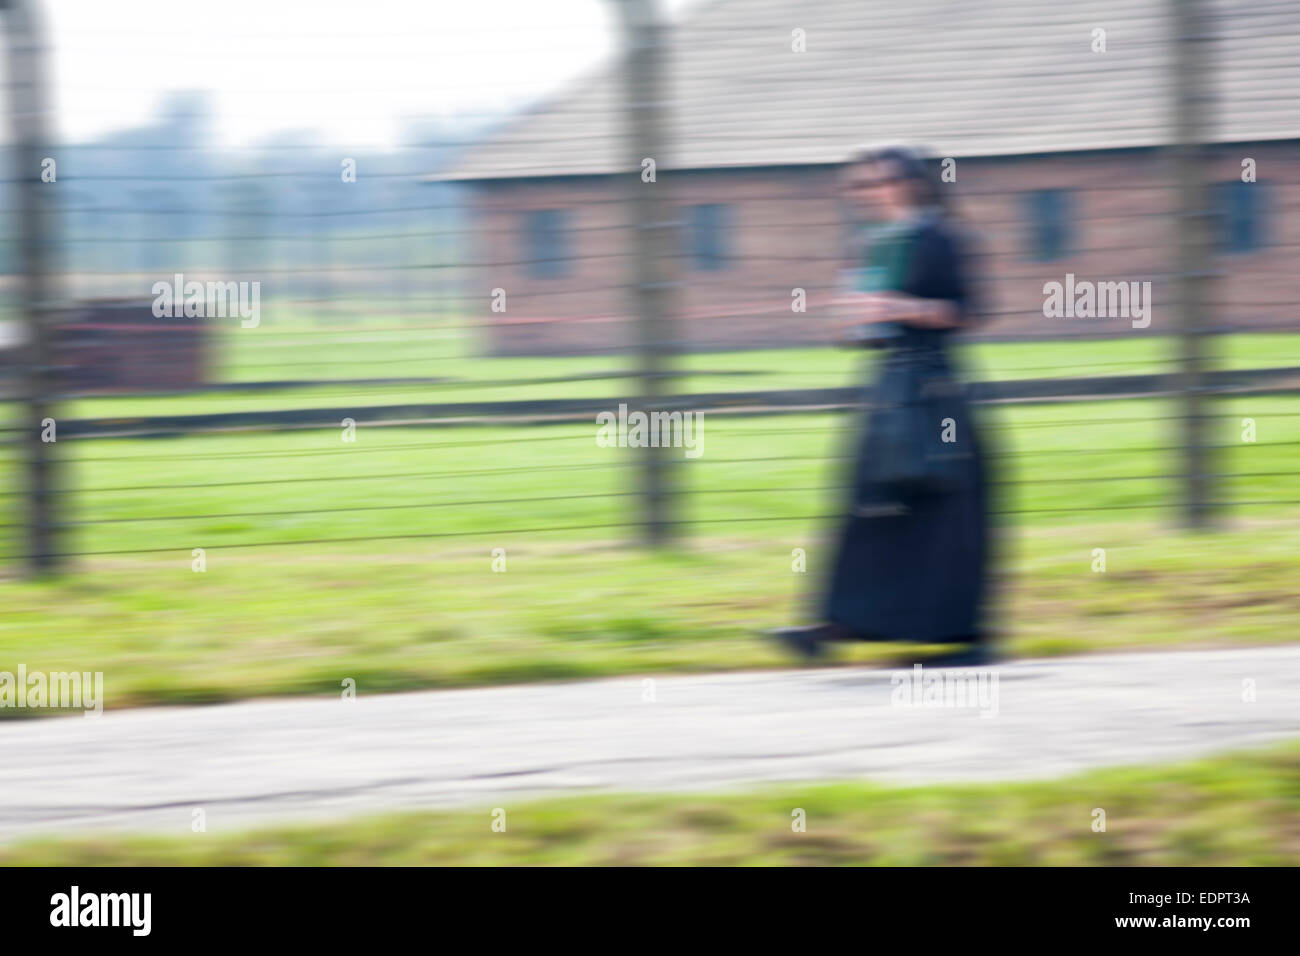 Nun hurrying past barbed wire fence and blocks at the Auschwitz-Birkenau concentration camp, Auschwitz, Poland - Stock Image